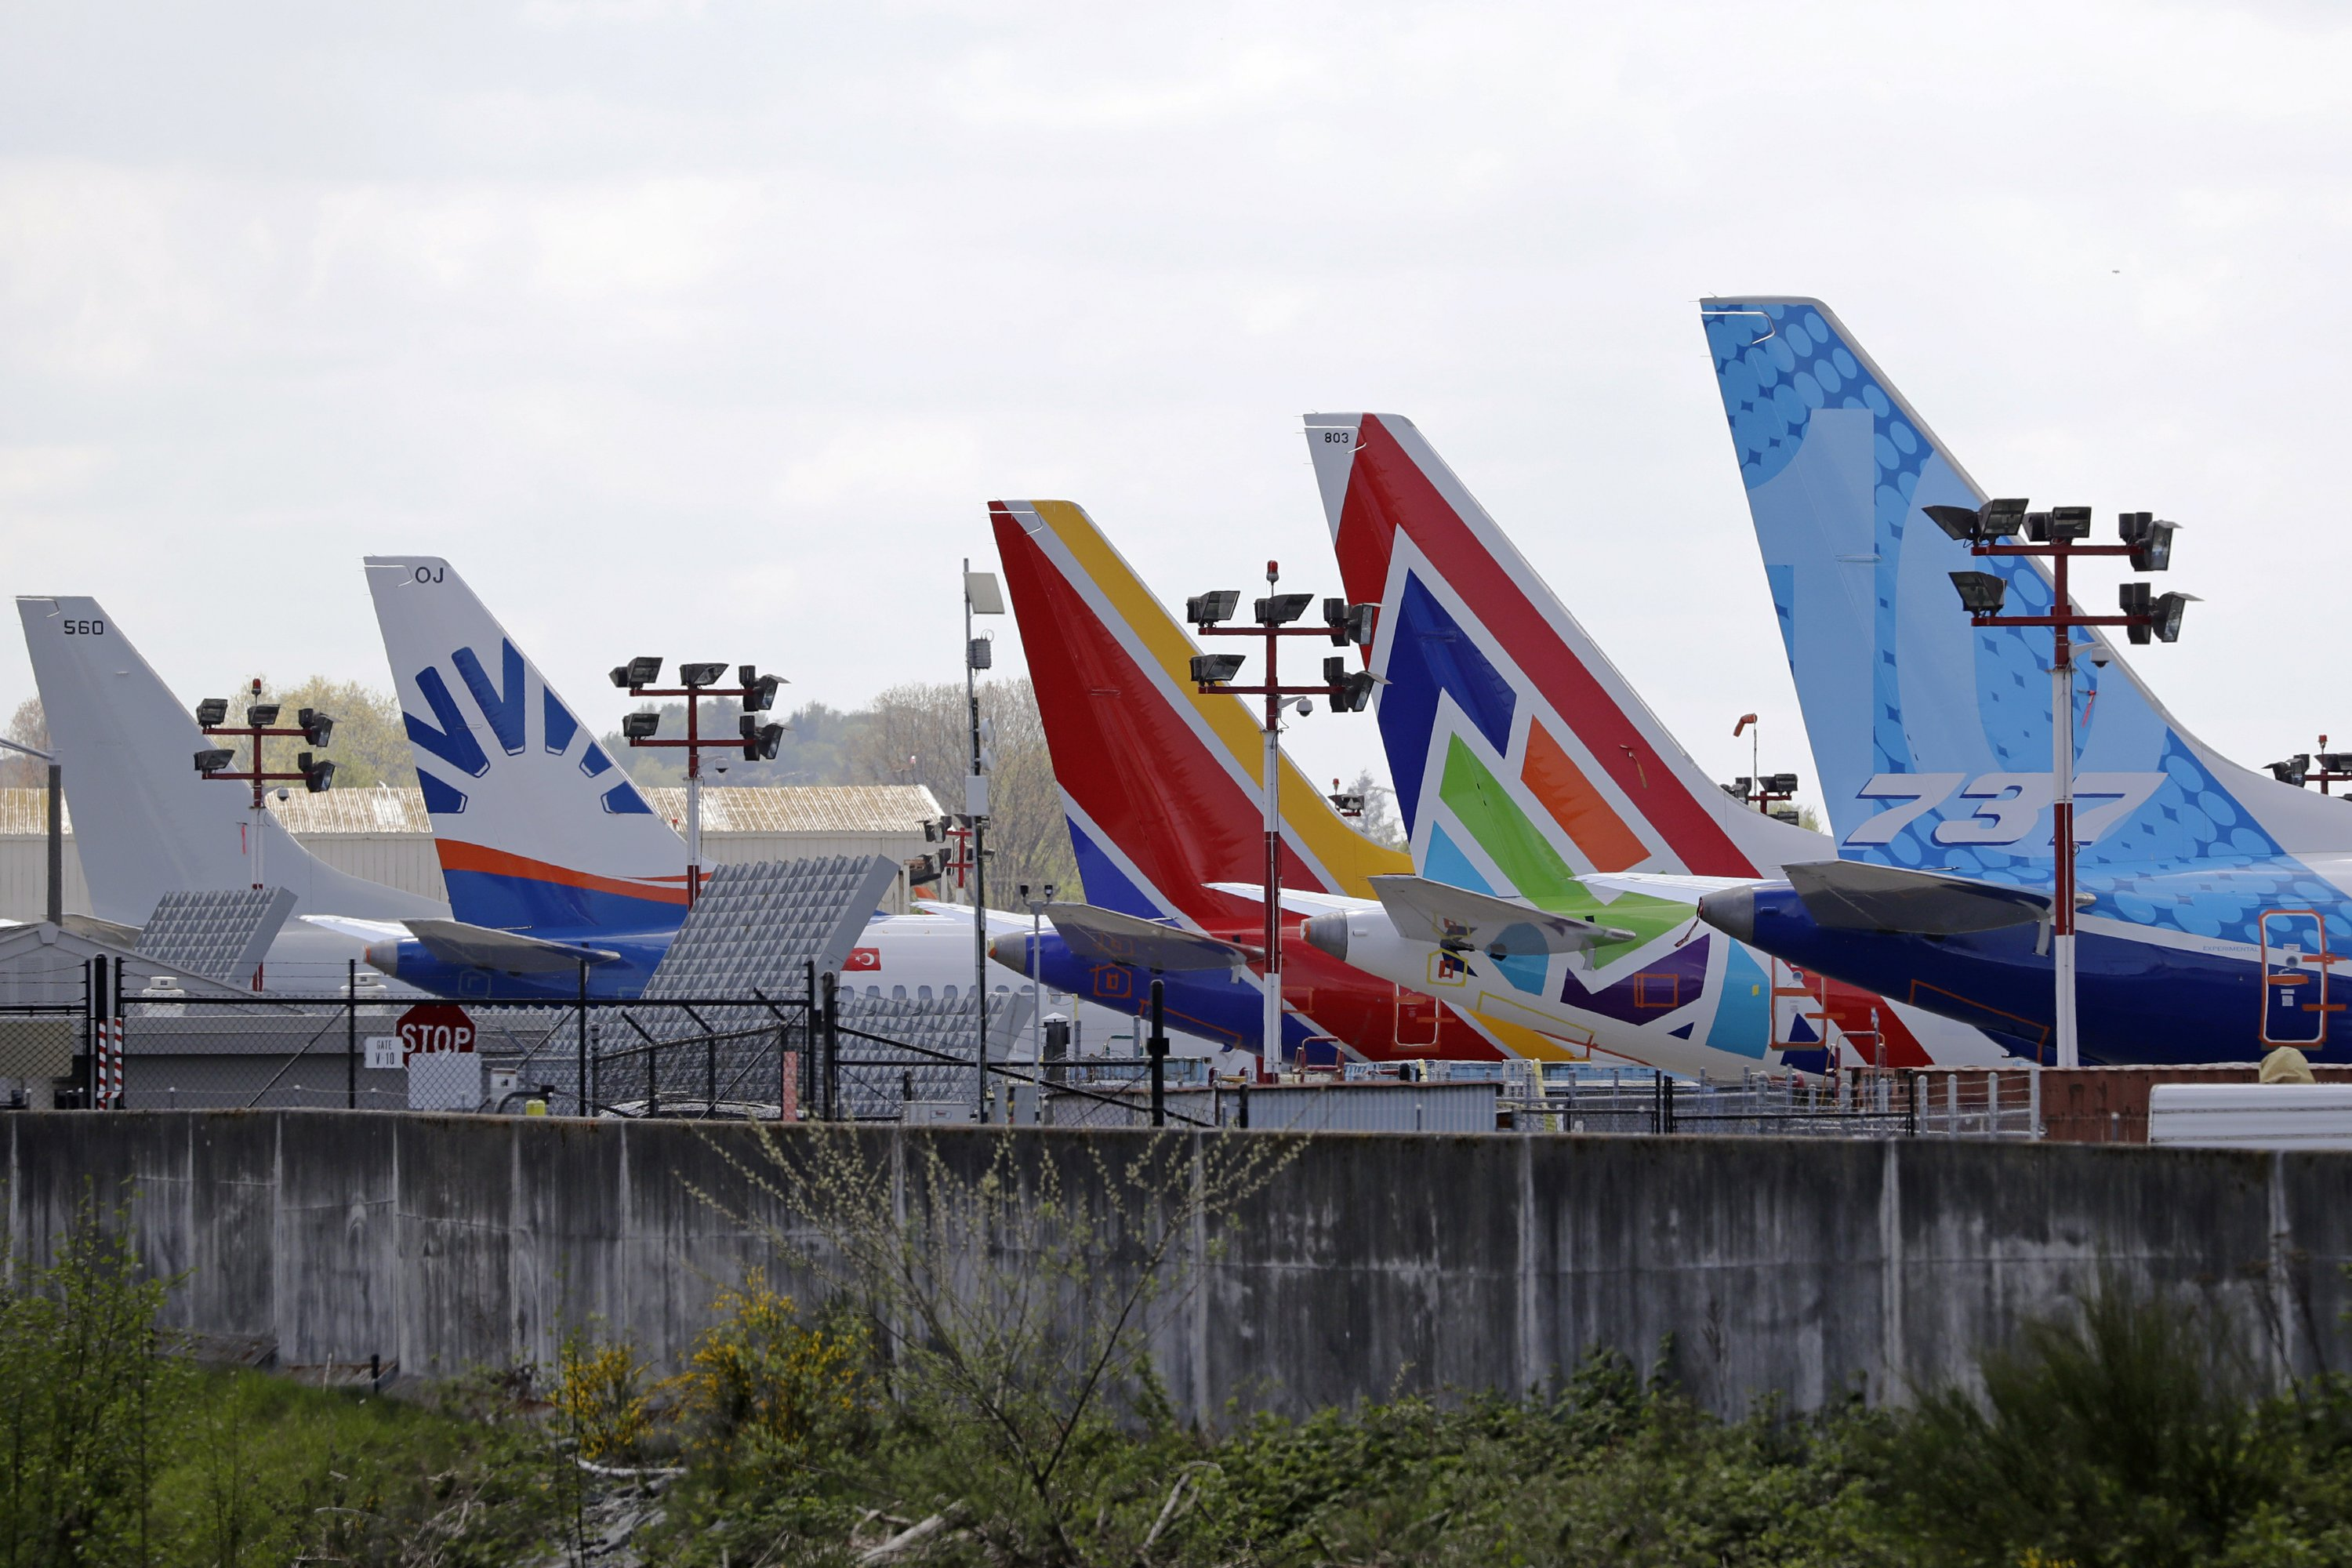 Boeing to outsource IT work to Dell, eliminate 600 jobs